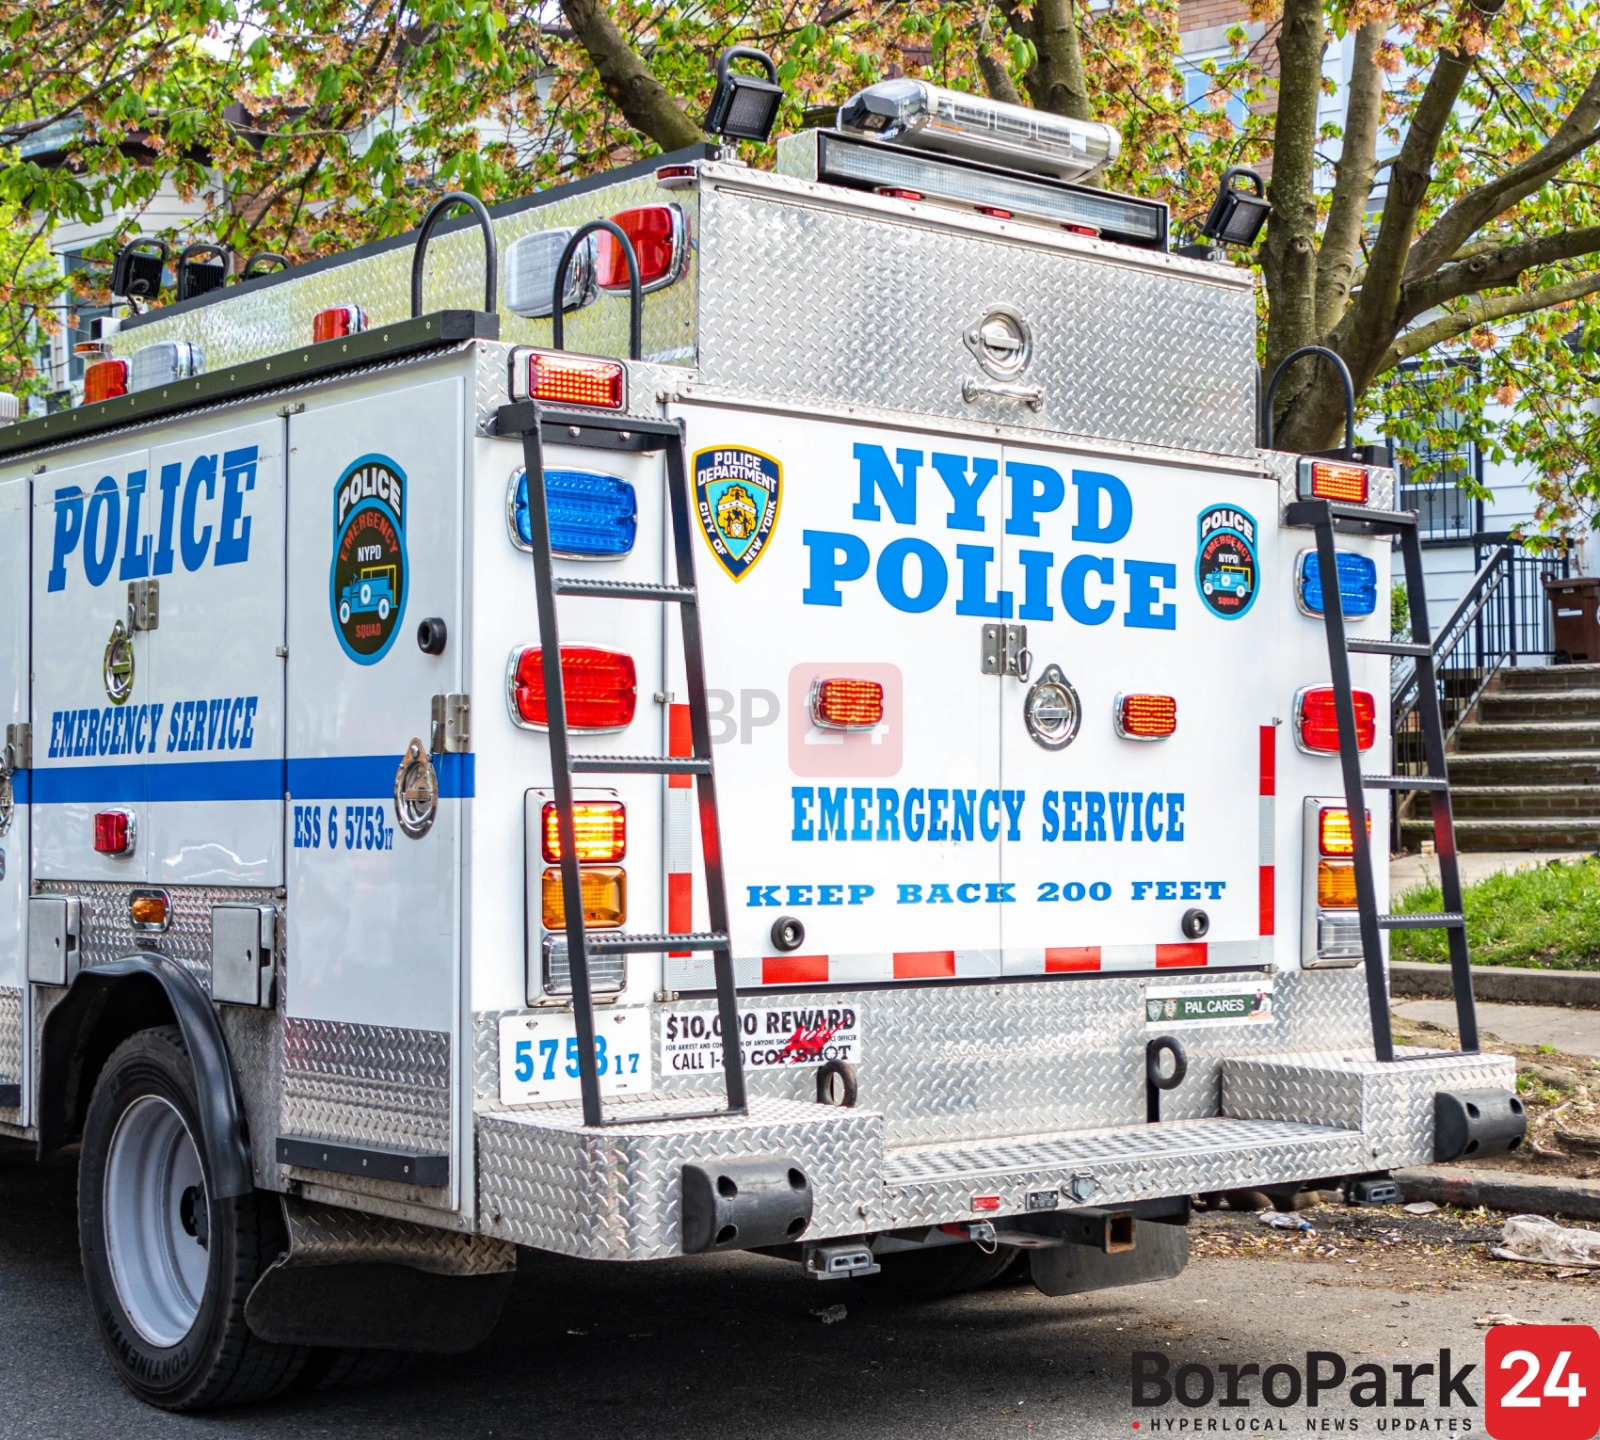 NYPD Asks for Ongoing Communication with Jews to Prevent Hate Crimes